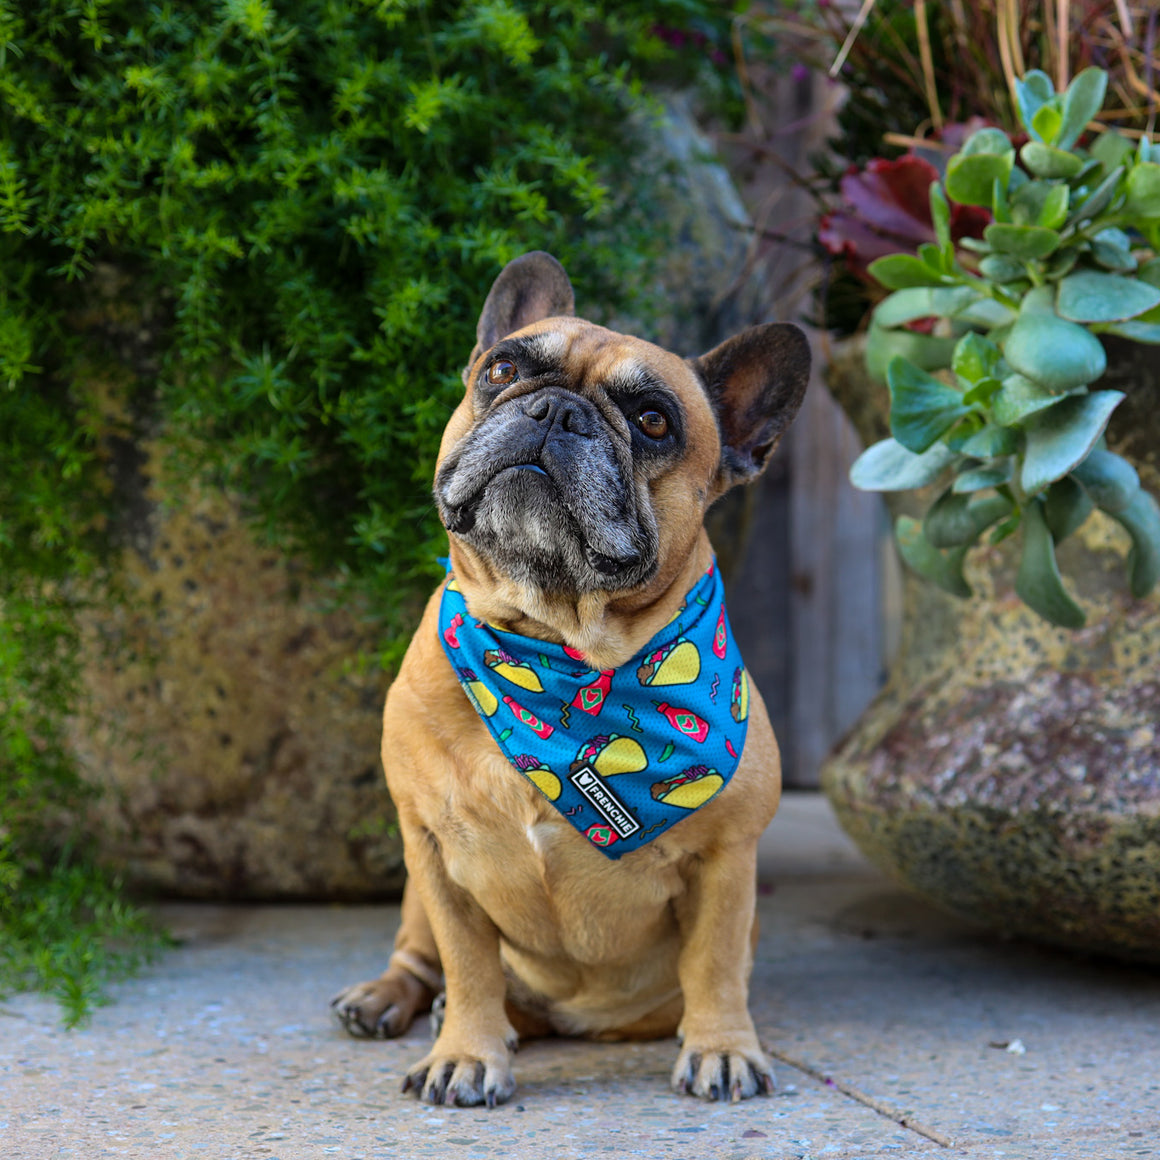 Frenchie Cooling Bandana - Taco - Frenchie Bulldog - Shop Harnesses for French Bulldogs - Shop French Bulldog Harness - Harnesses for Pugs